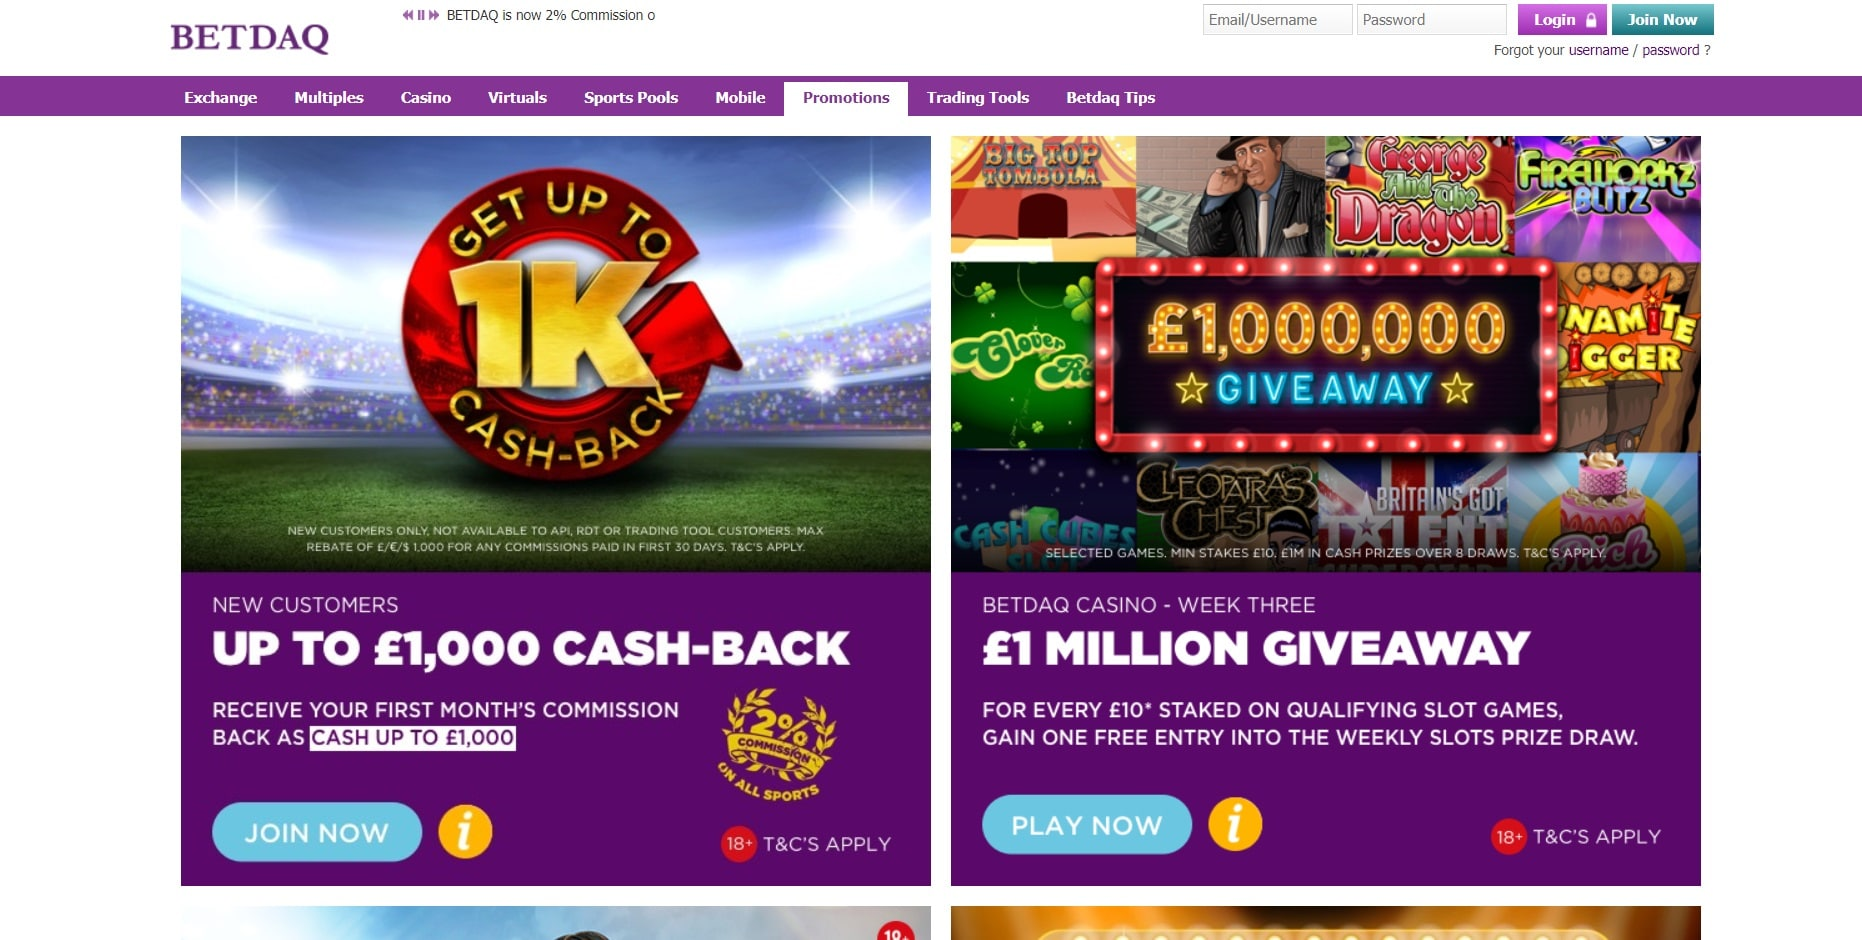 HOME / BETTING EXCHANGE / BETDAQ EXCHANGE REVIEW Betdaq Exchange Free Bet Betdaq Exchange Review